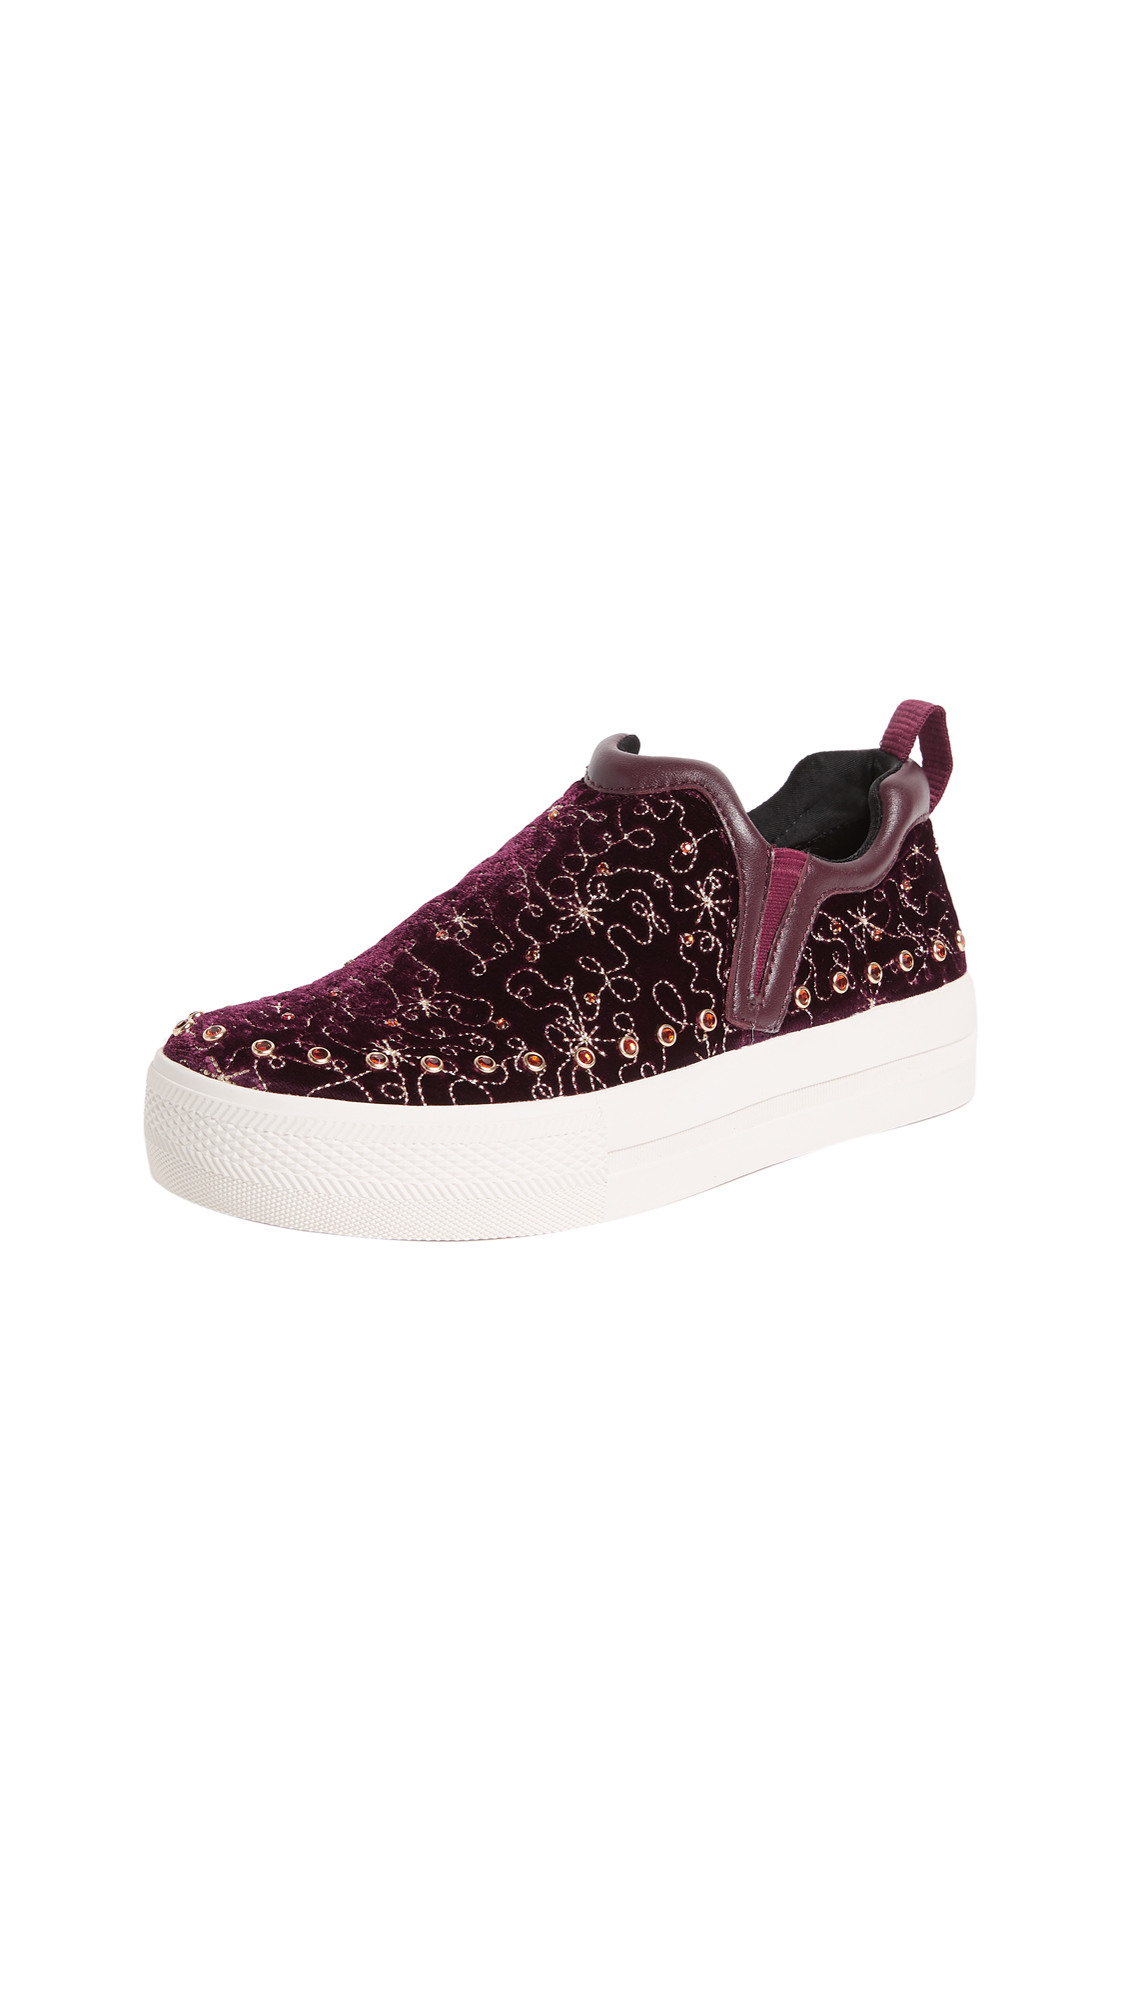 Ash Jetset Embroidered Sneakers - Bordeaux